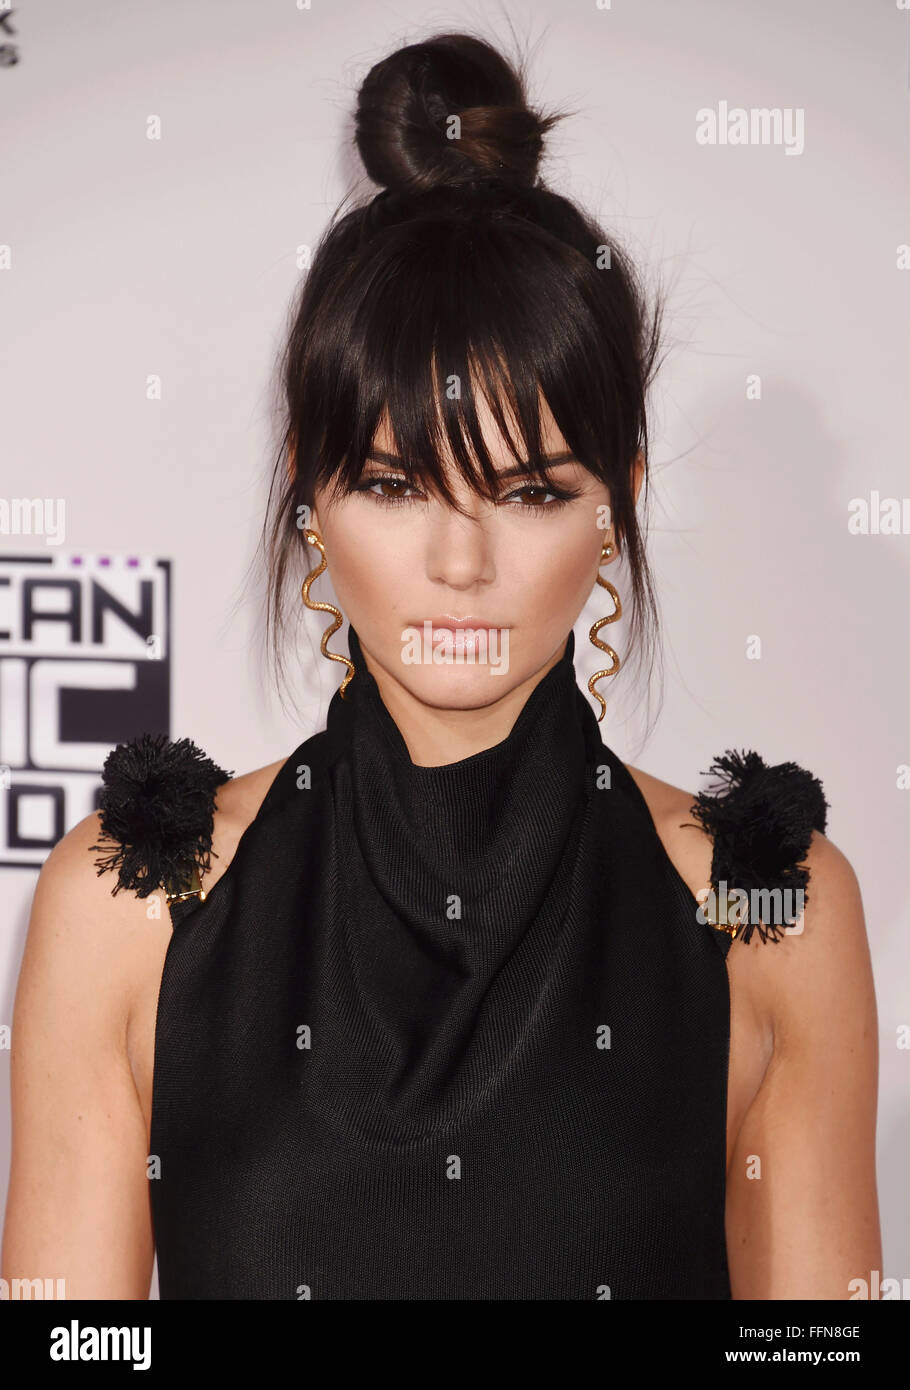 TV personality Kendall Jenner arrives at the 2015 American Music Awards at Microsoft Theater on November 22, 2015 - Stock Image